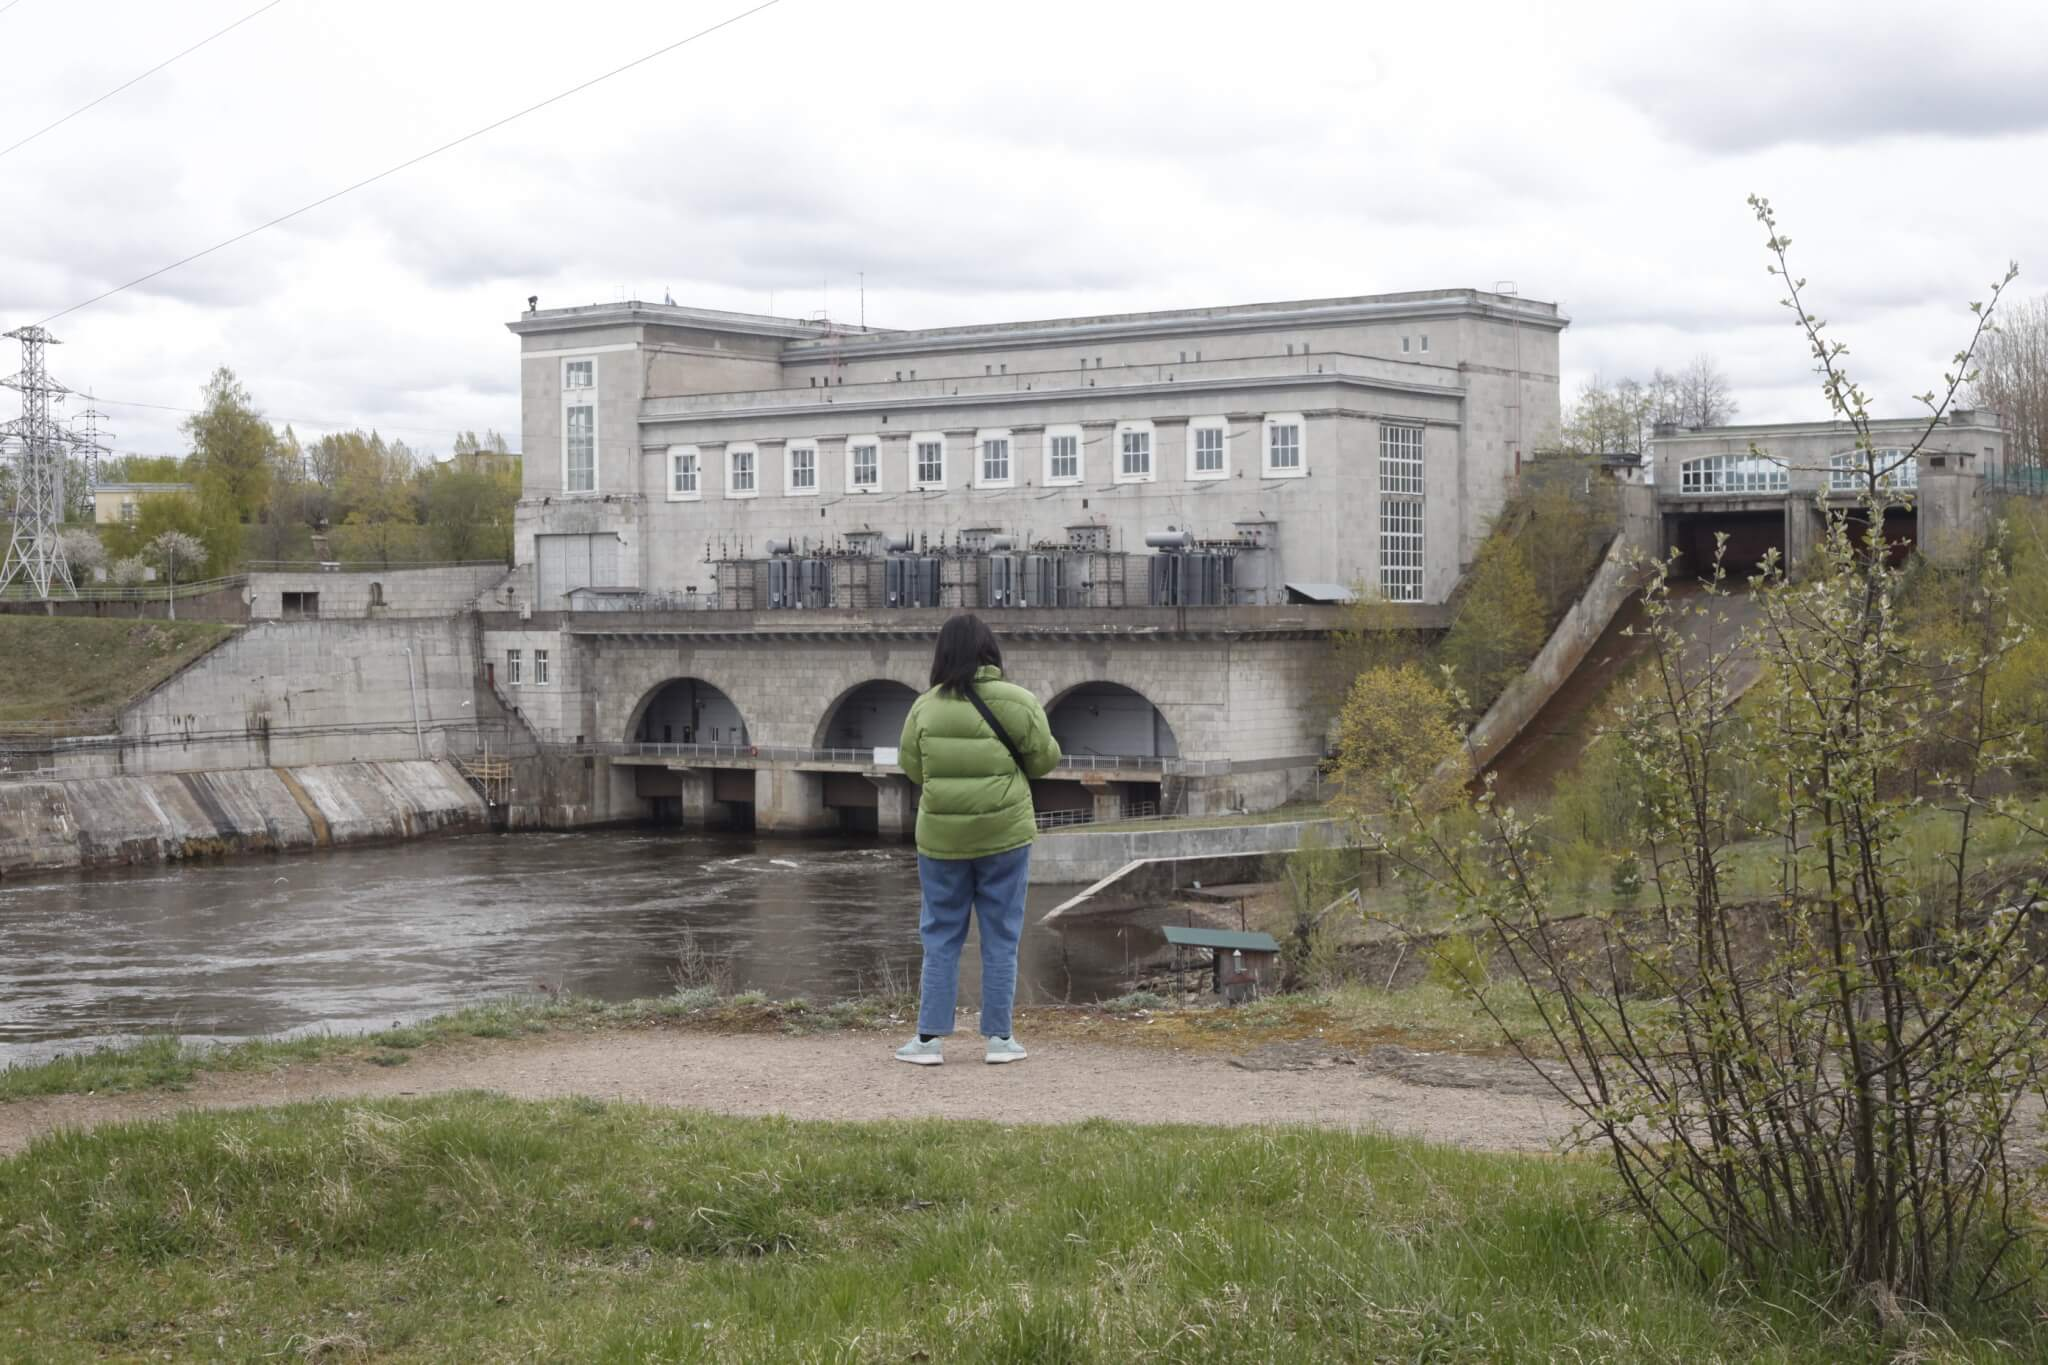 Yin Aiwen by the Narva Hydroelectric Station